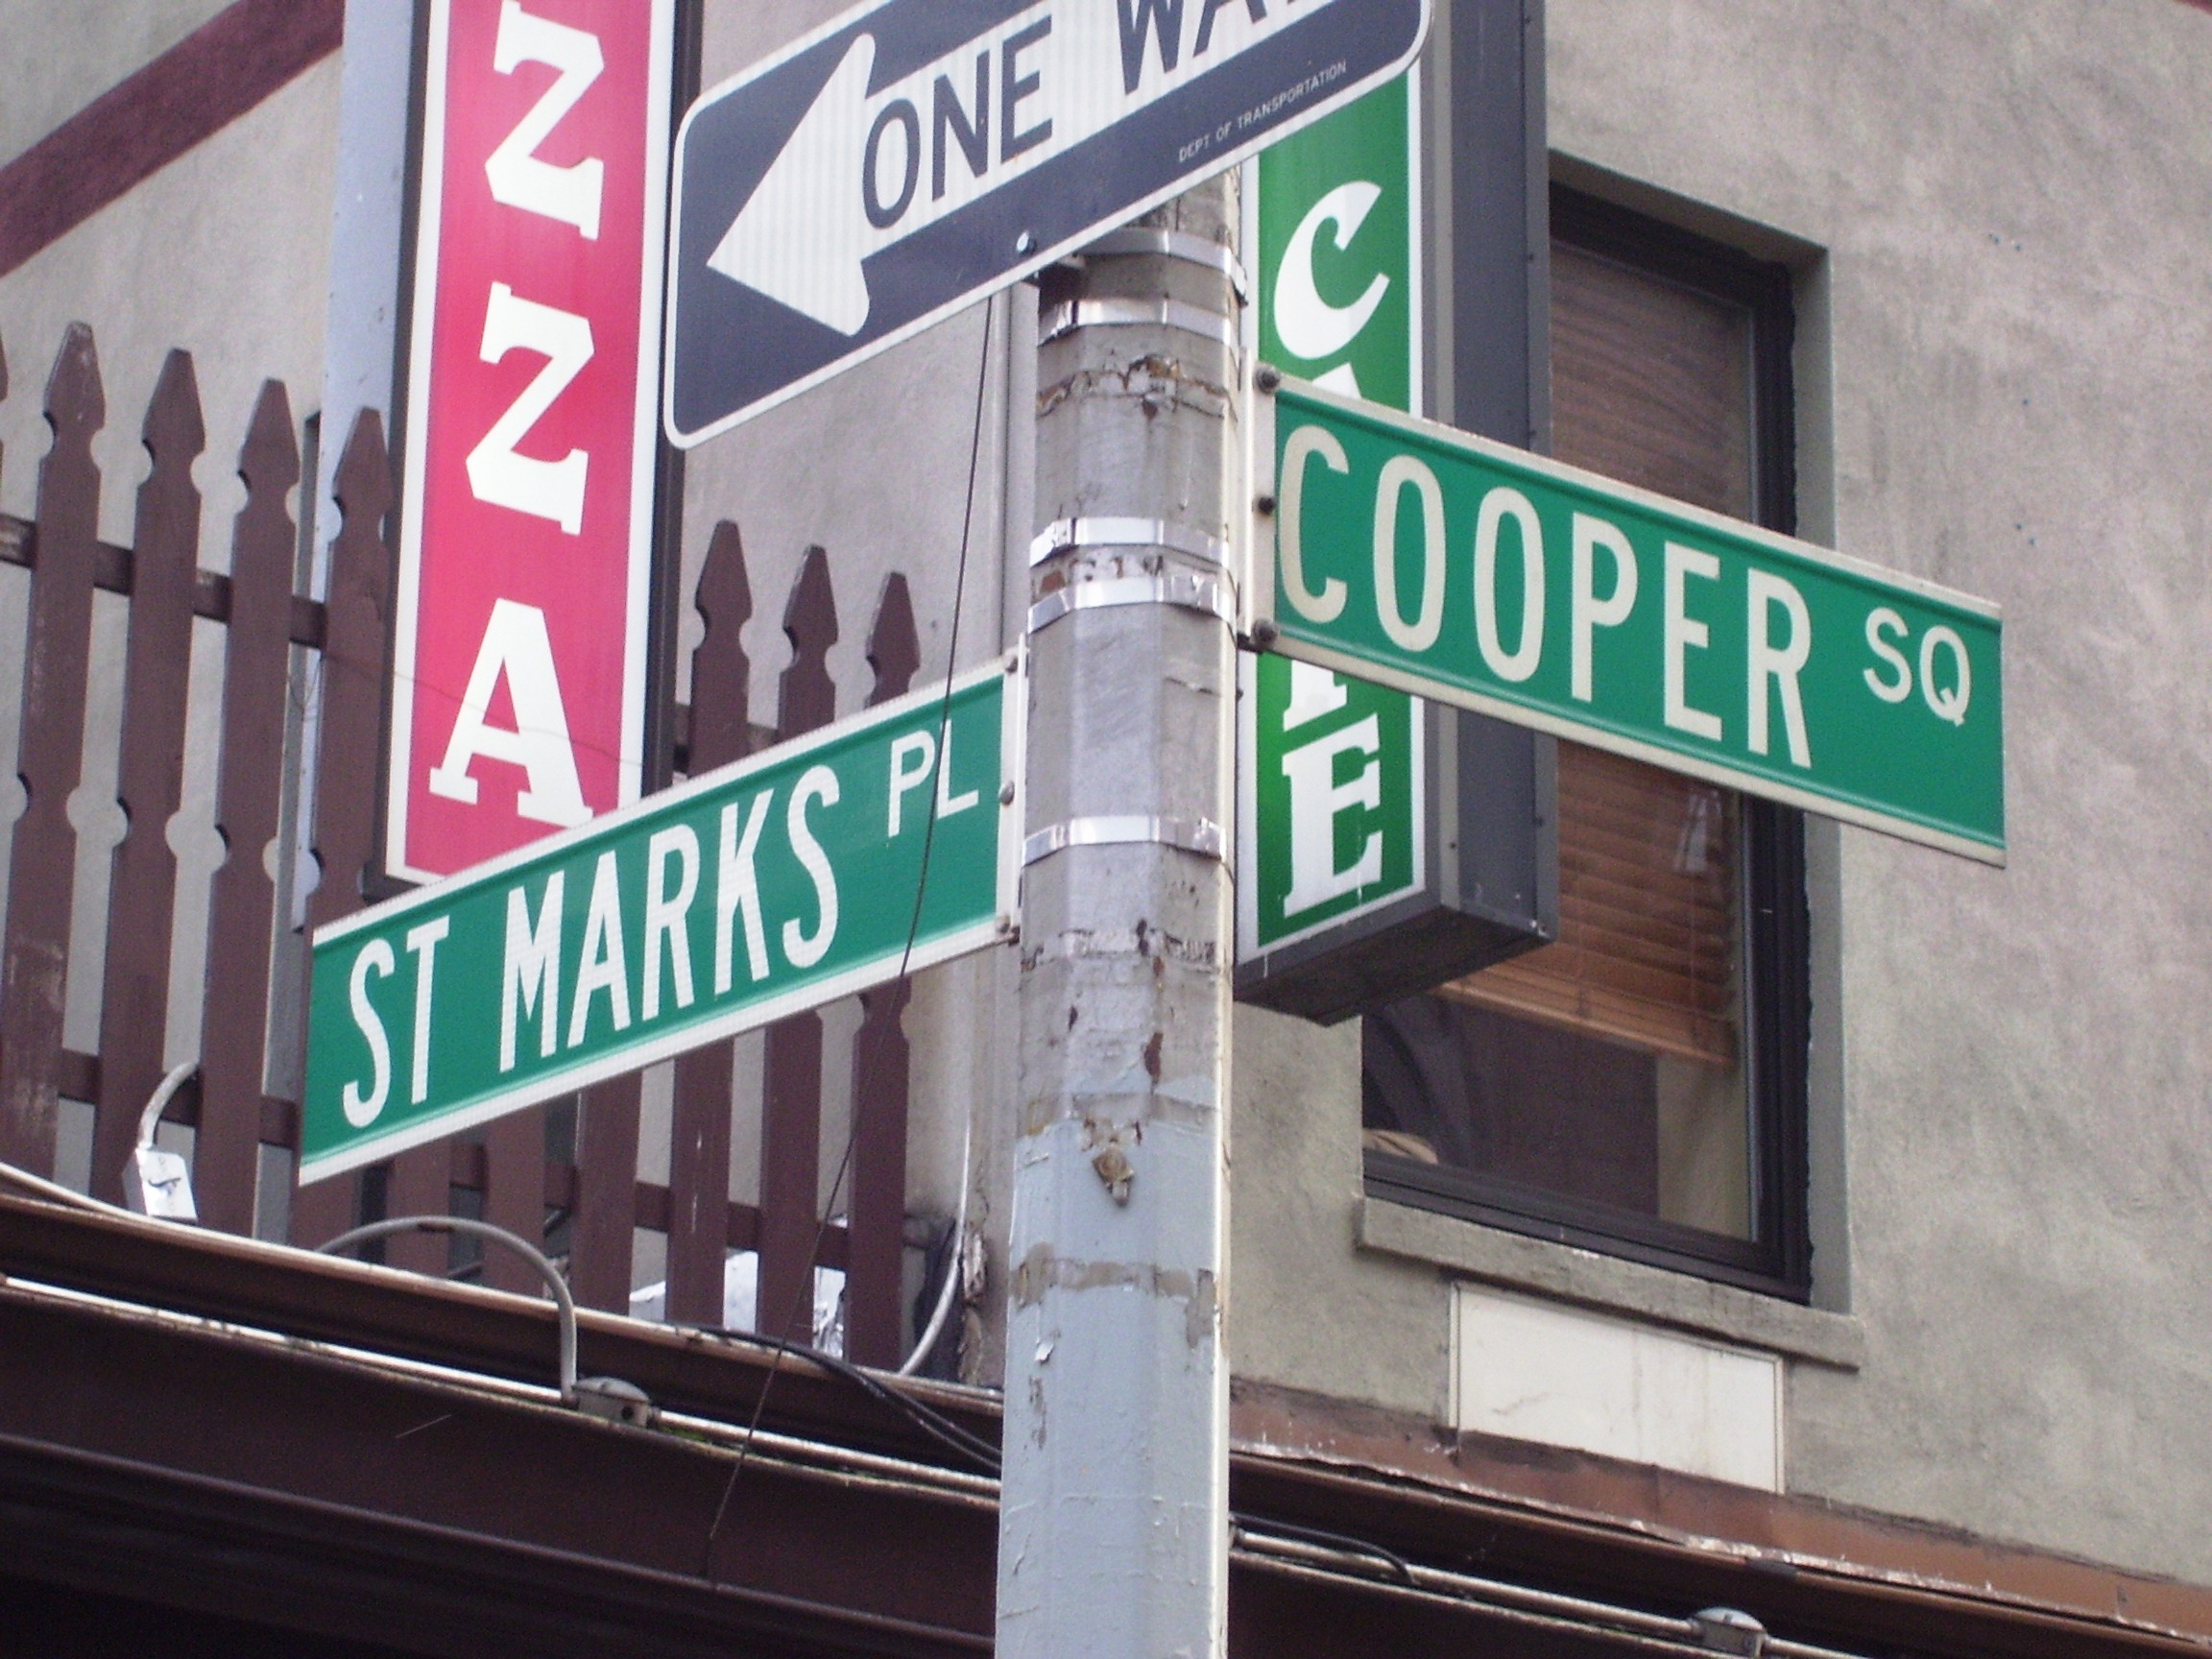 st. marks comics, st. marks place, east village